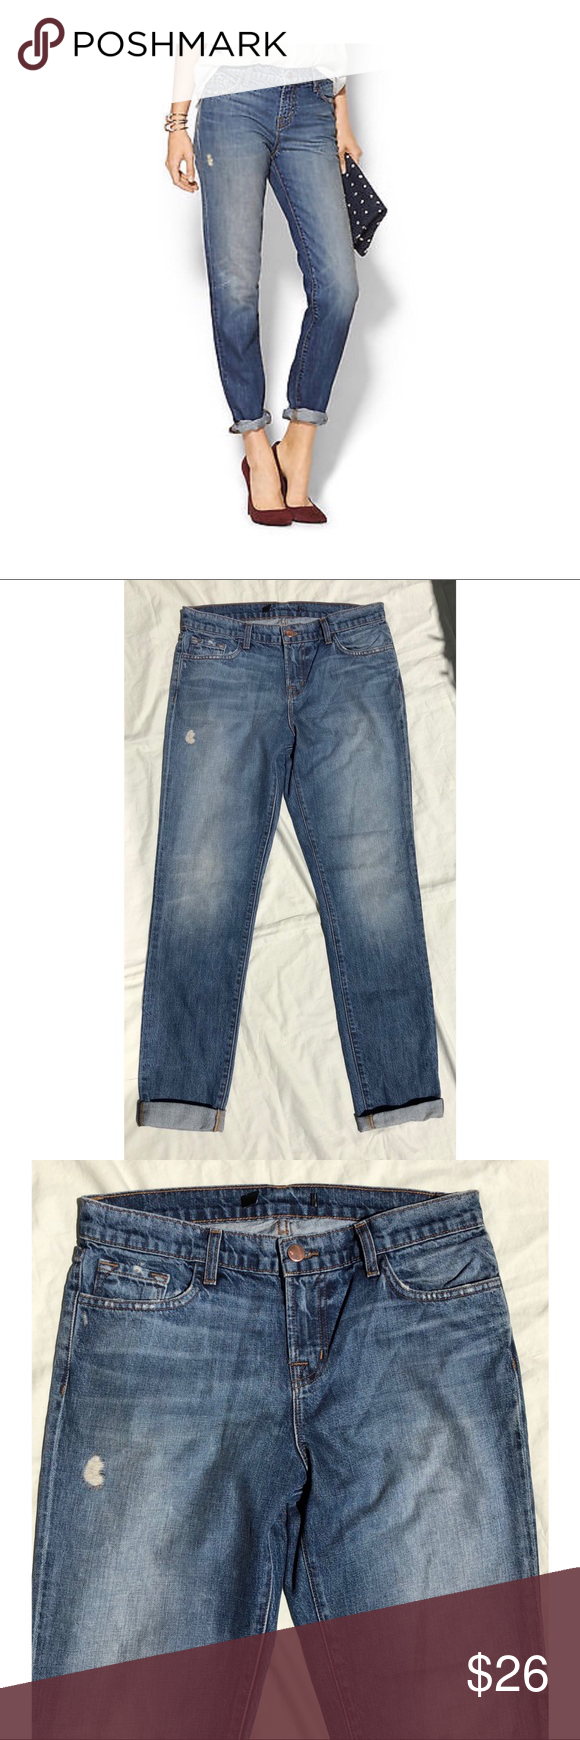 """J Brand Slim Boyfriend Skinny Distressed JAKE J Brand Slim Boyfriend Skinny Distressed JAKE Jeans in ADORED Wash  Size: 25  Waist: 30""""  Rise: 9""""  Hip: 38""""  Inseam: 30 1/2"""" uncuffed  Cotton Blend  Some of there inside tags have been cut out. Other wise in excellent/pristine condition. J Brand Jeans Boyfriend"""